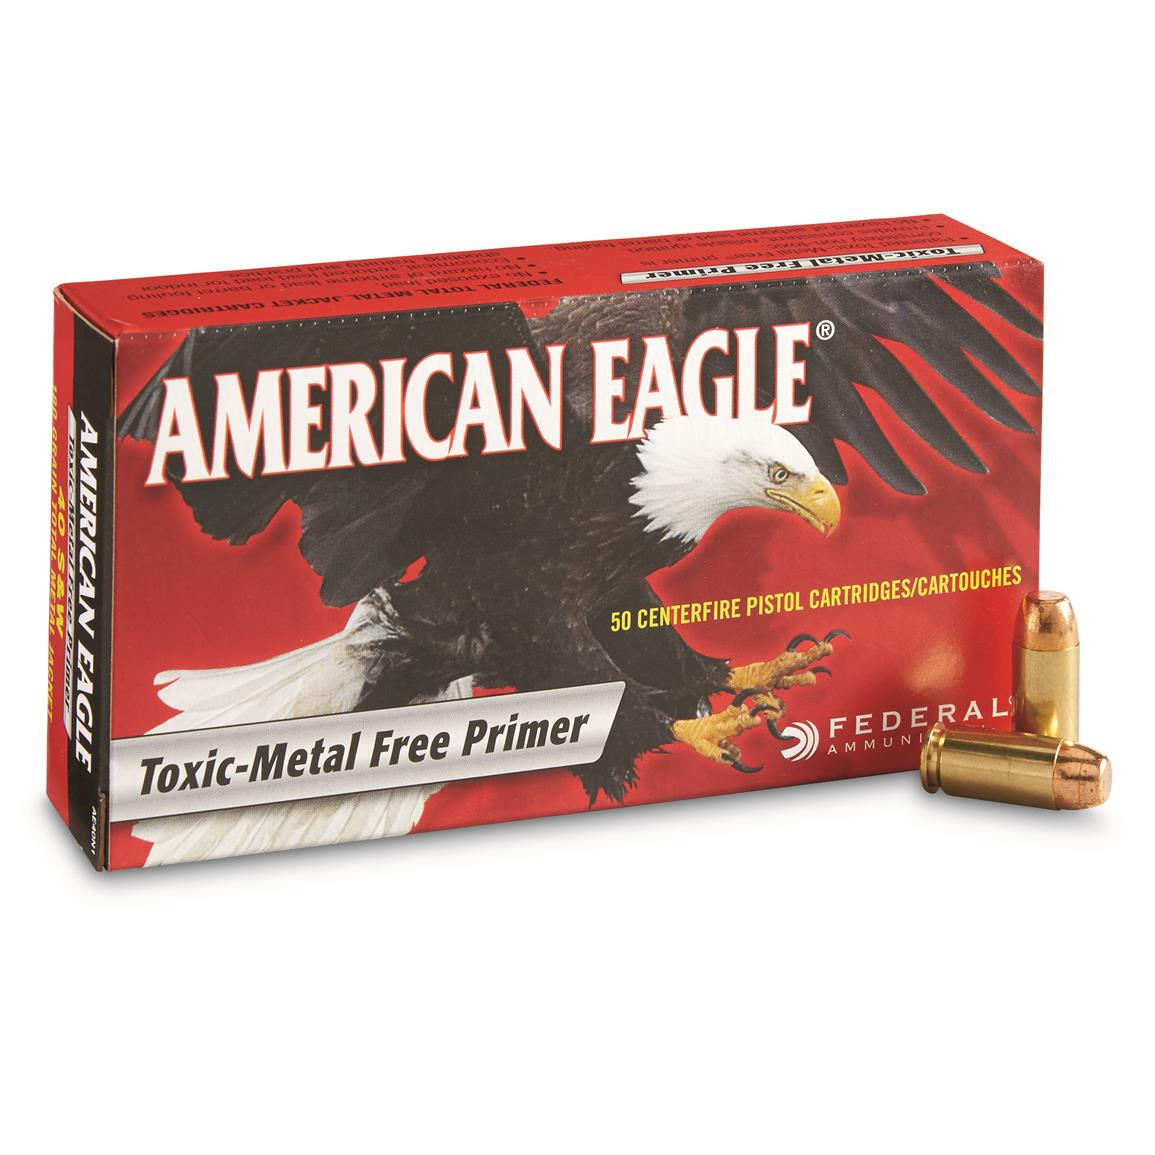 Federal American Eagle Pistol, .40 S&W, TMJ, 180 Grain, 50 Rounds